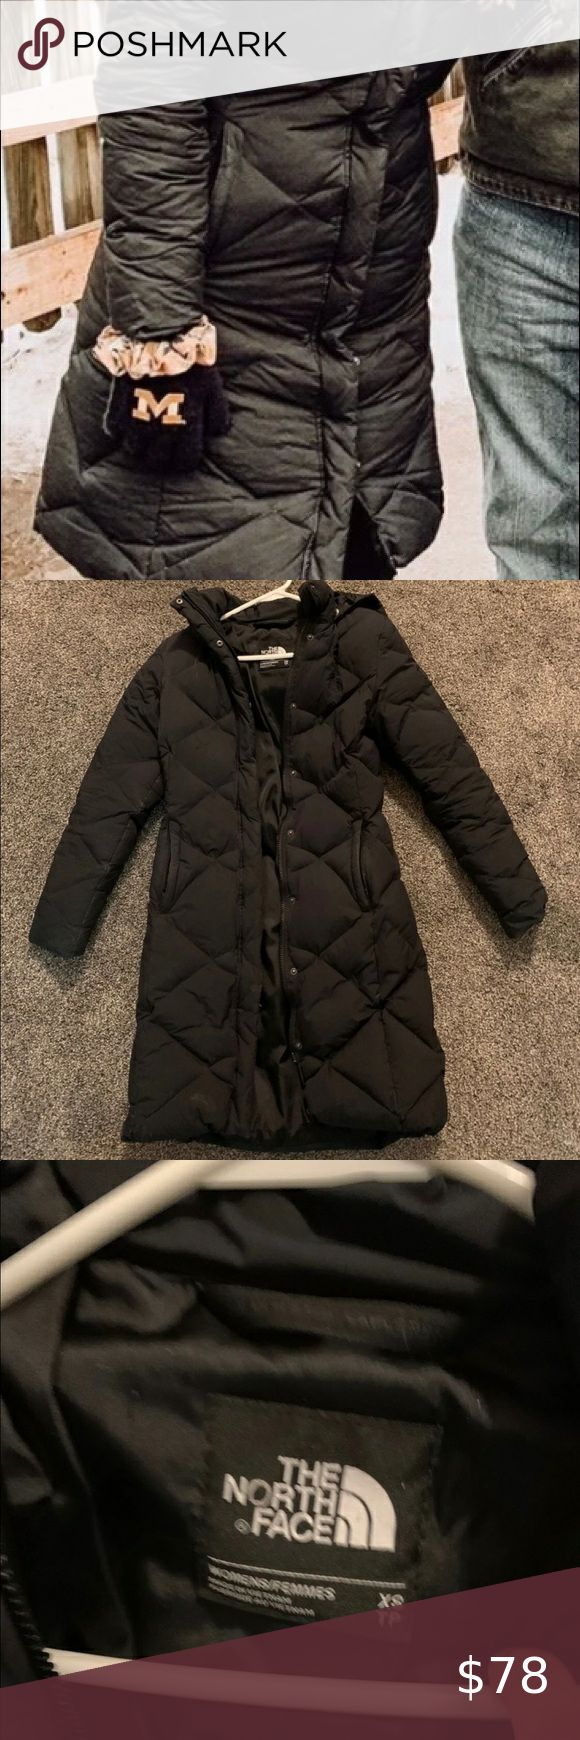 The Northface 500 Down Jacket Great Condition 500 Down Jacket Smoke Free Home No Holes Or Tears Detachable Hood Poc Jackets Down Jacket North Face Jacket [ 1740 x 580 Pixel ]